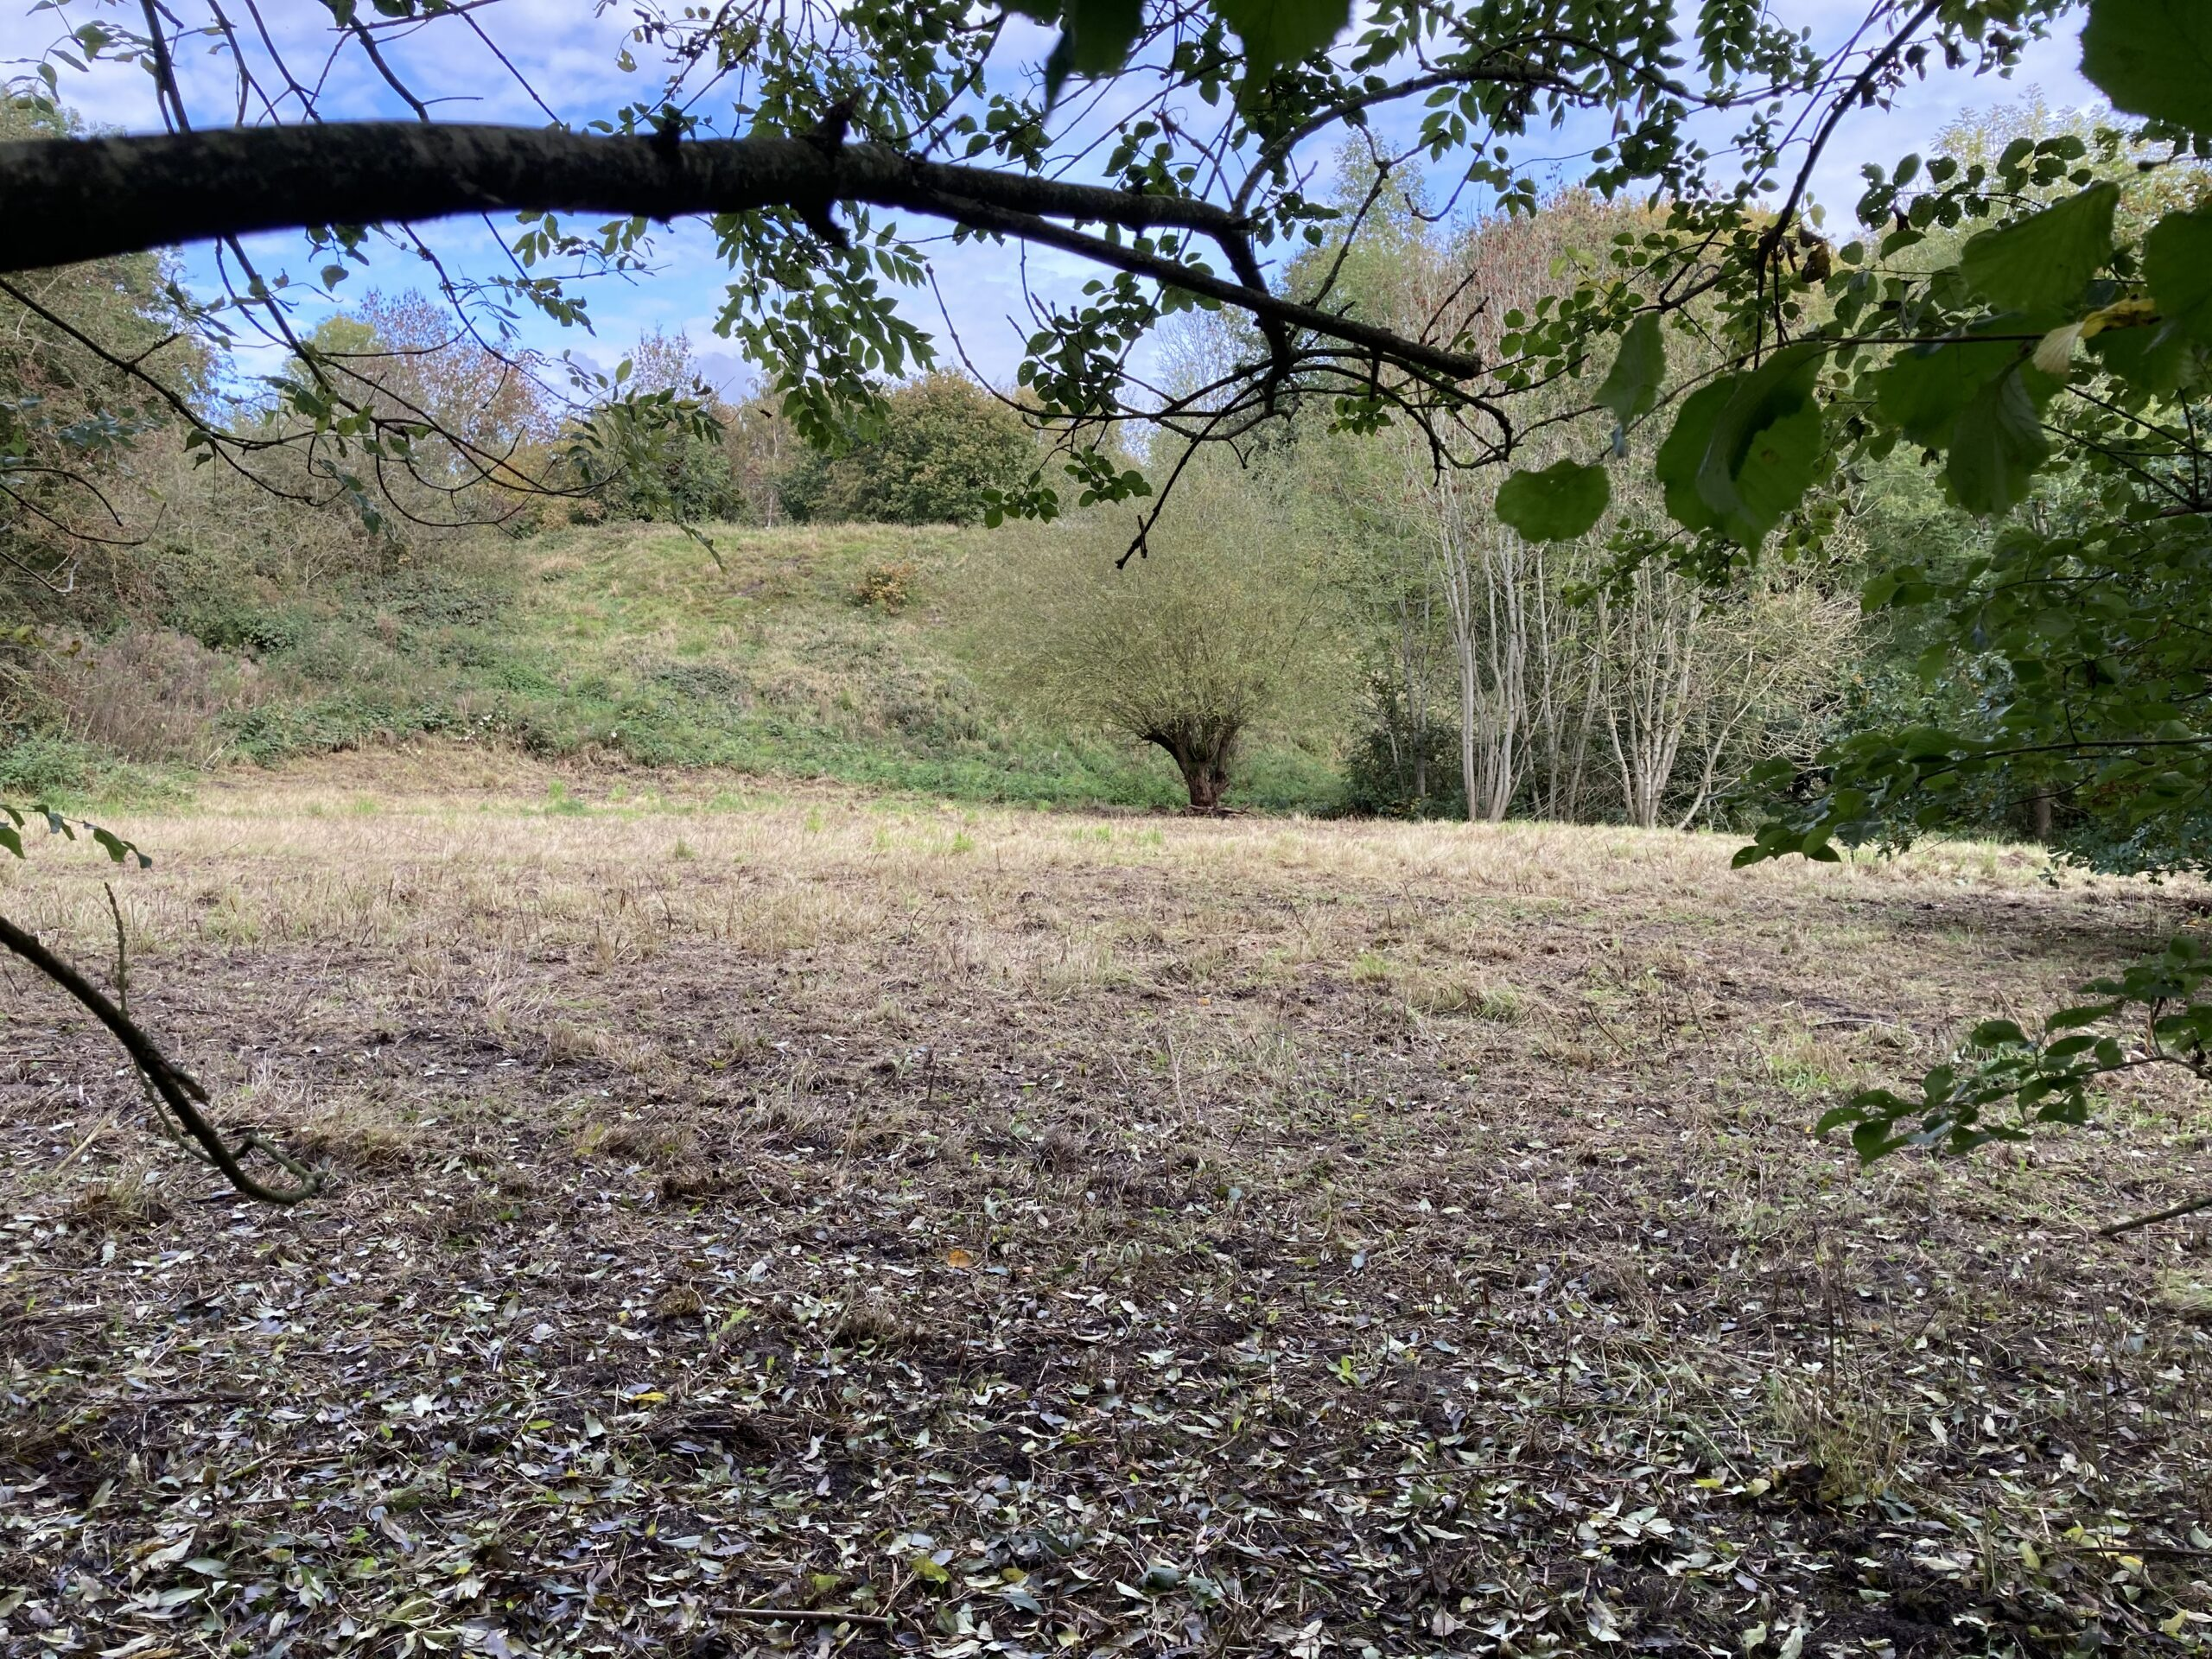 The South Bank from across the Meadow - October